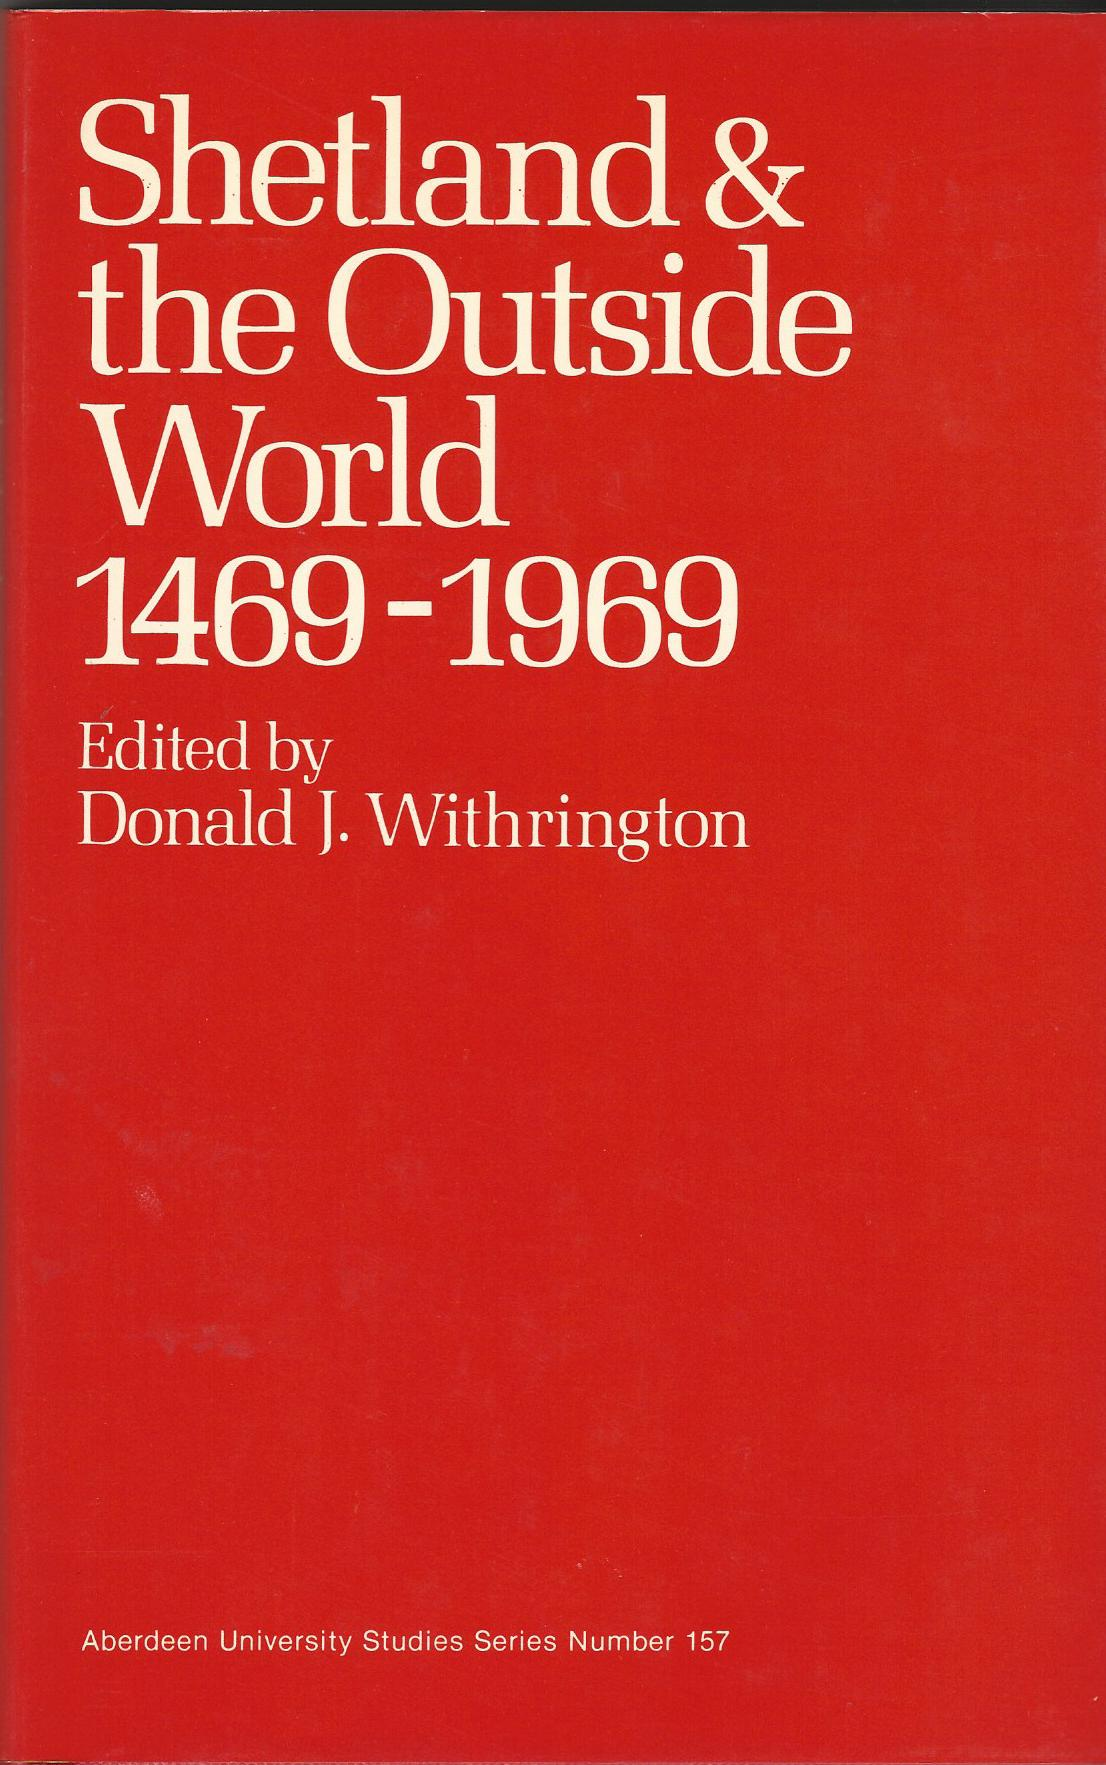 Image for Shetland and the Outside World, 1469-1969 (Aberdeen University Studies series)